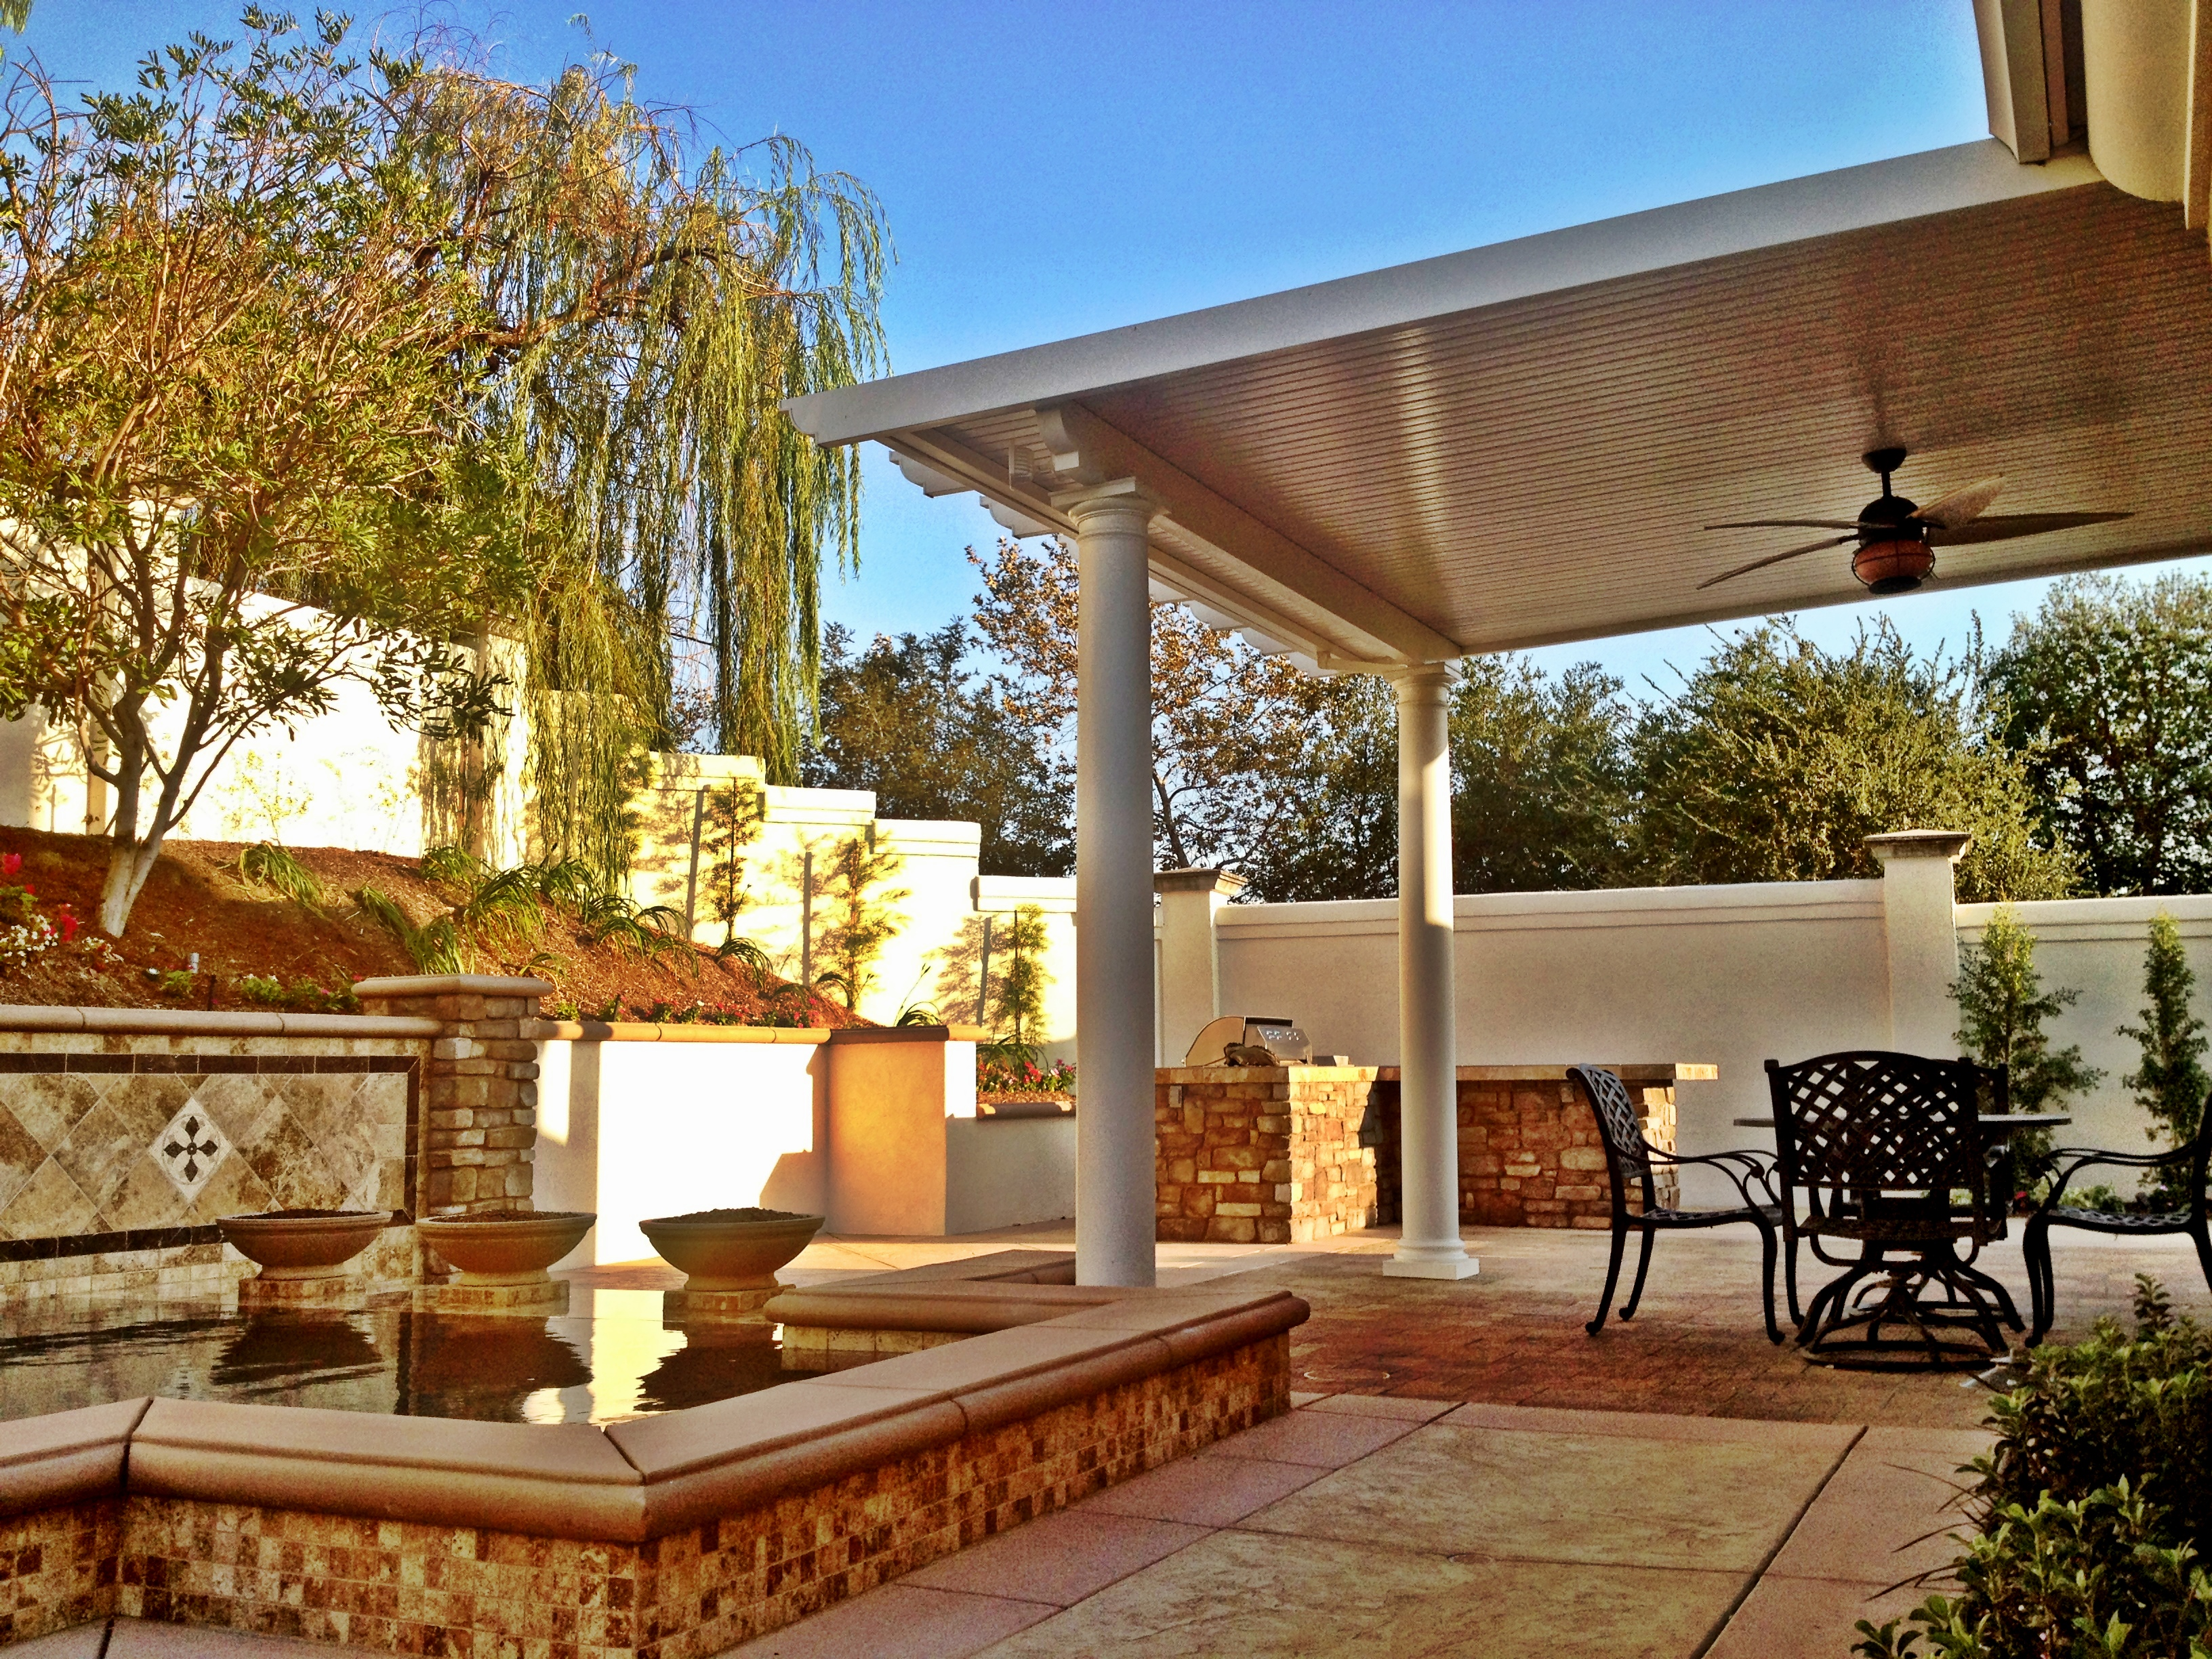 & DIY Alumawood Patio Cover Kits Shipped Nationwide